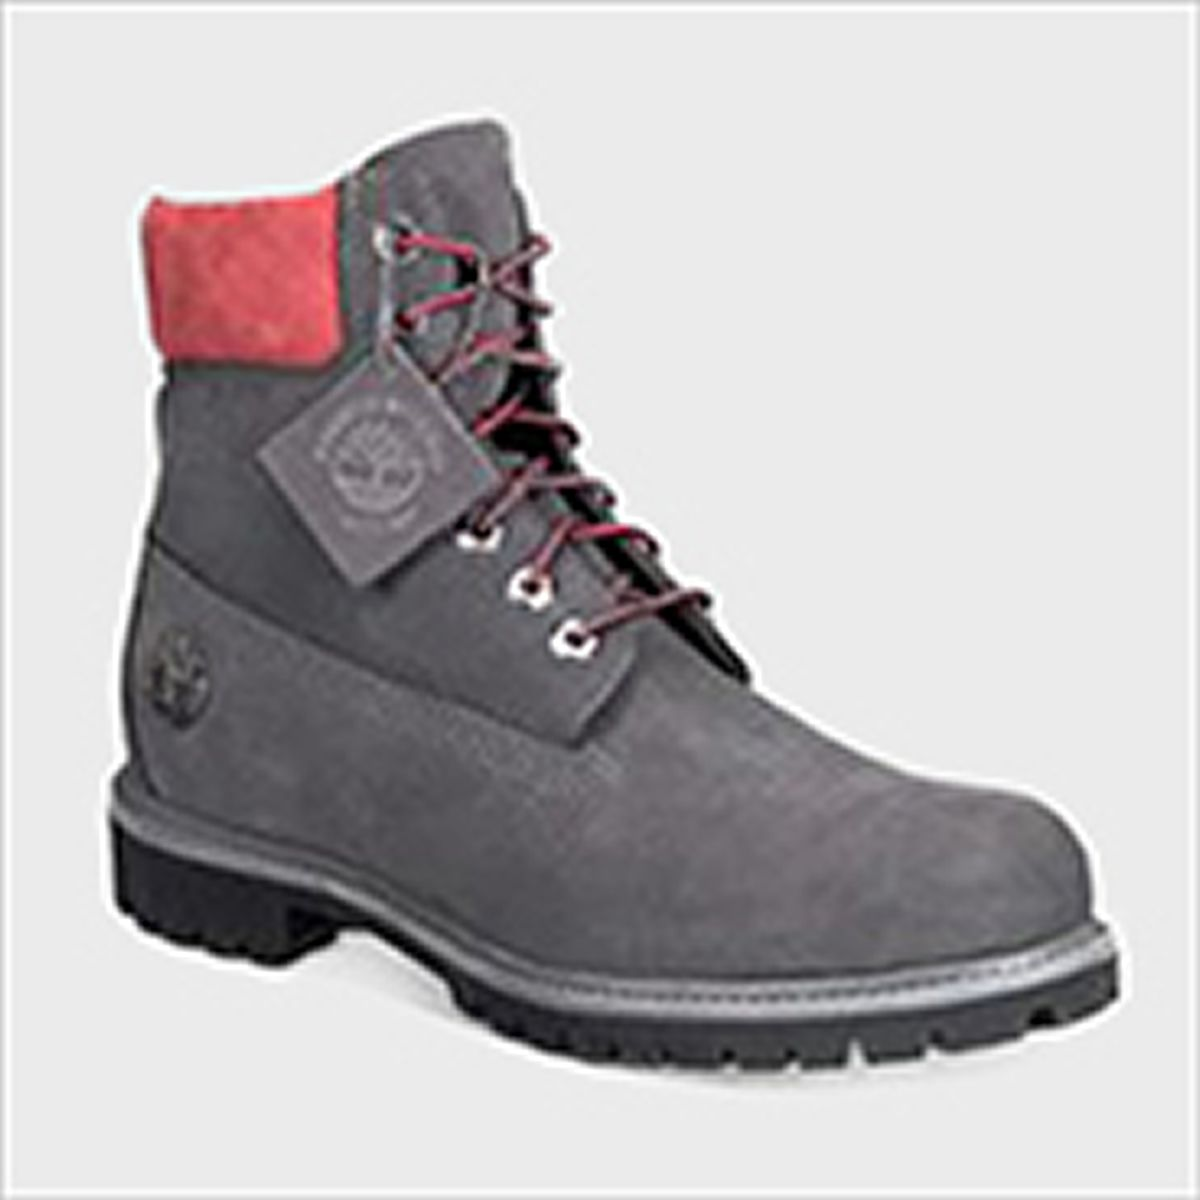 83e30f32c7b0 Timberland Boots and Shoes For Men - Macy s